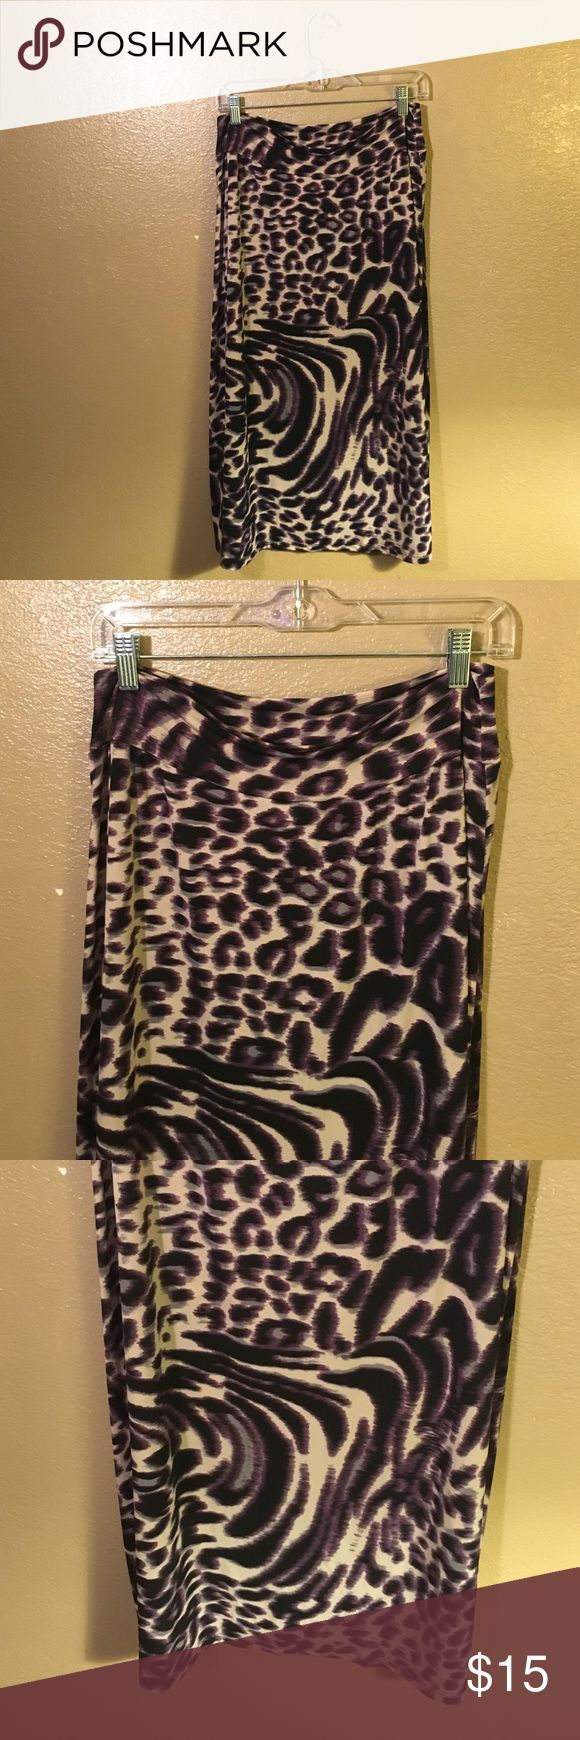 Purple Zebra/Cheetah Skirt Great condition, no stains or rips, any questions just ask. 🚫No Trades Skirts Maxi